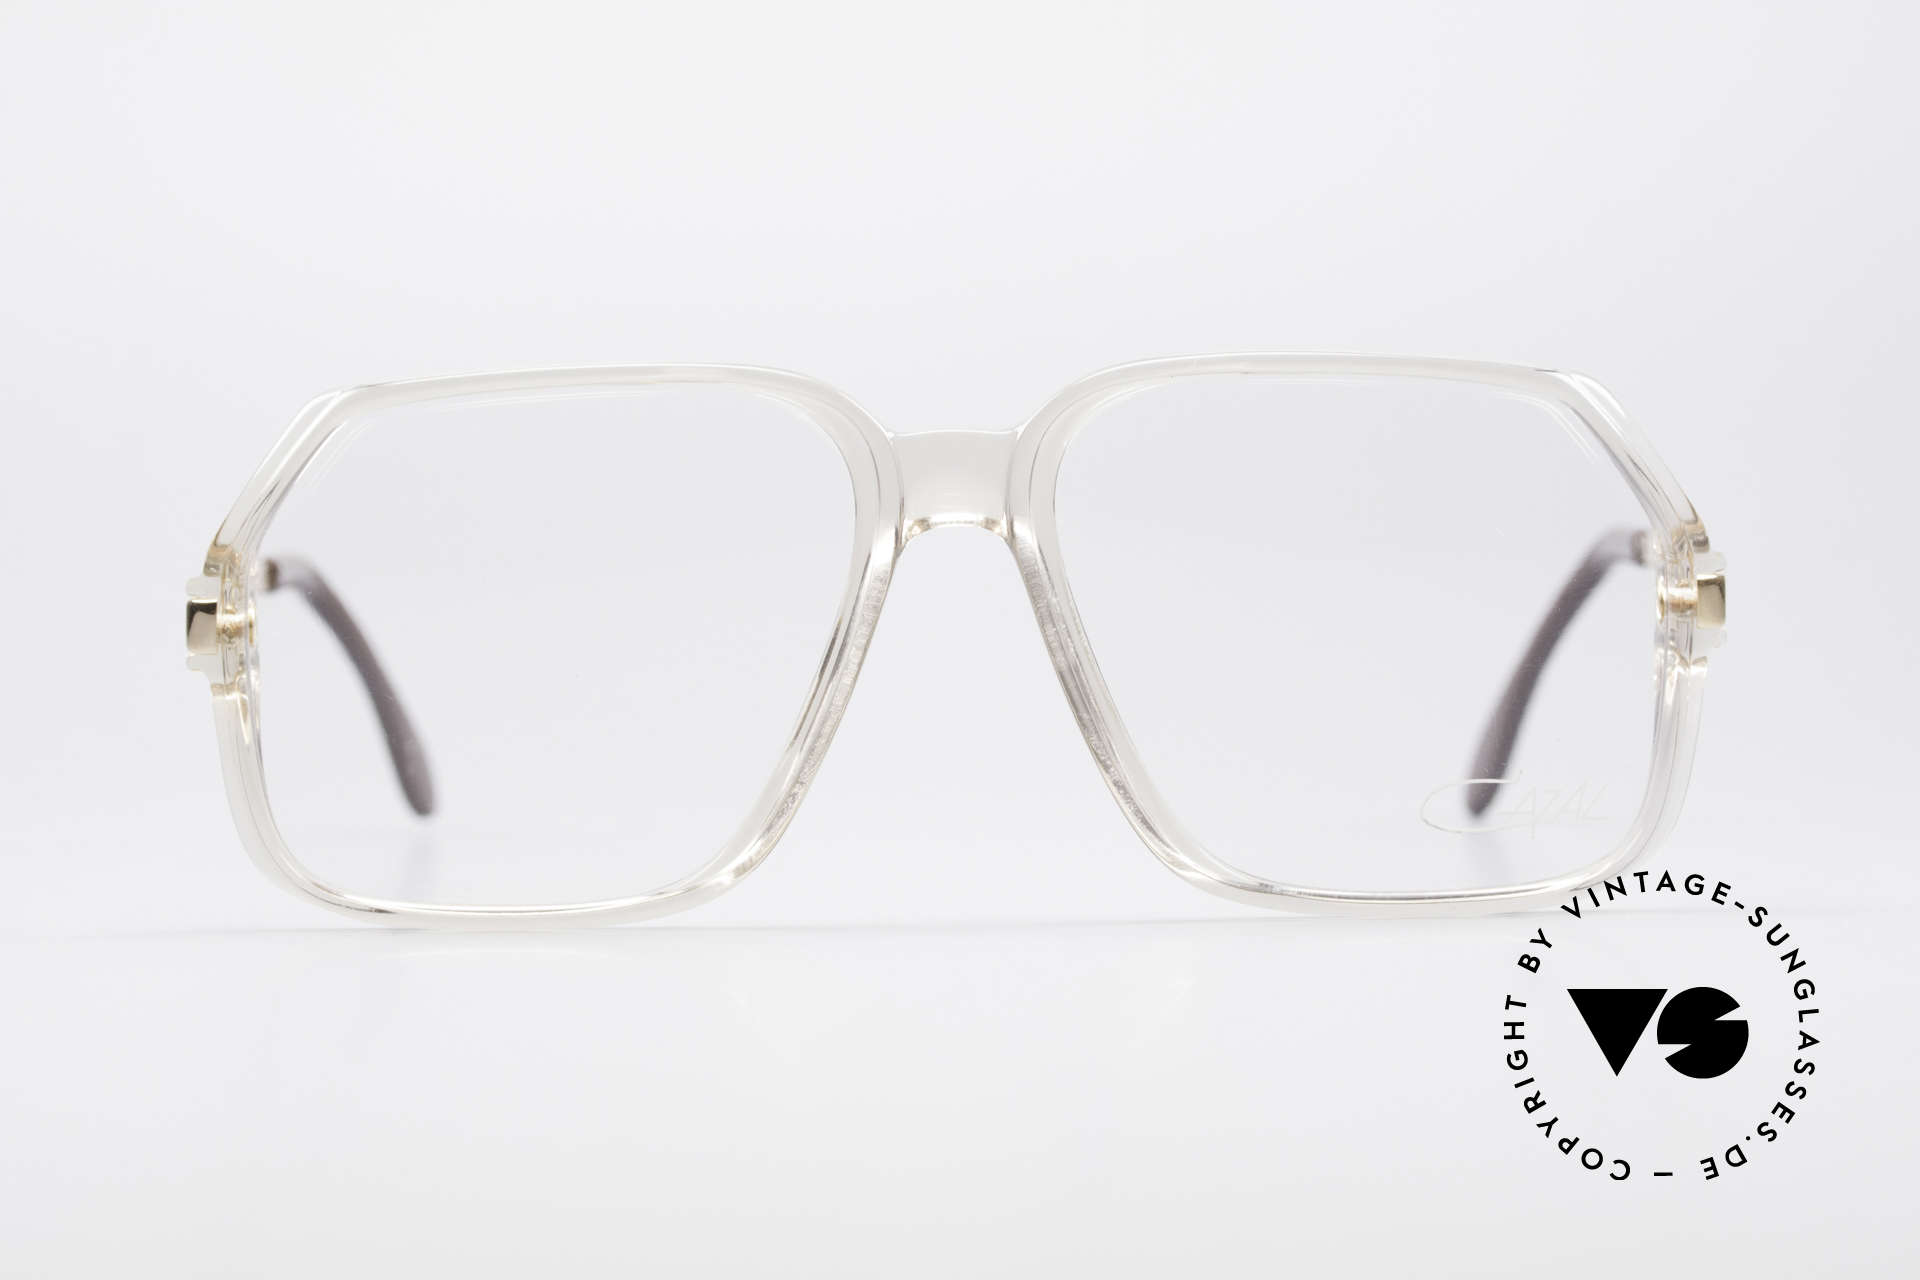 Cazal 625 West Germany 80's Eyeglasses, rarity (with the old CAZAL logo), true Hip Hop style, Made for Men